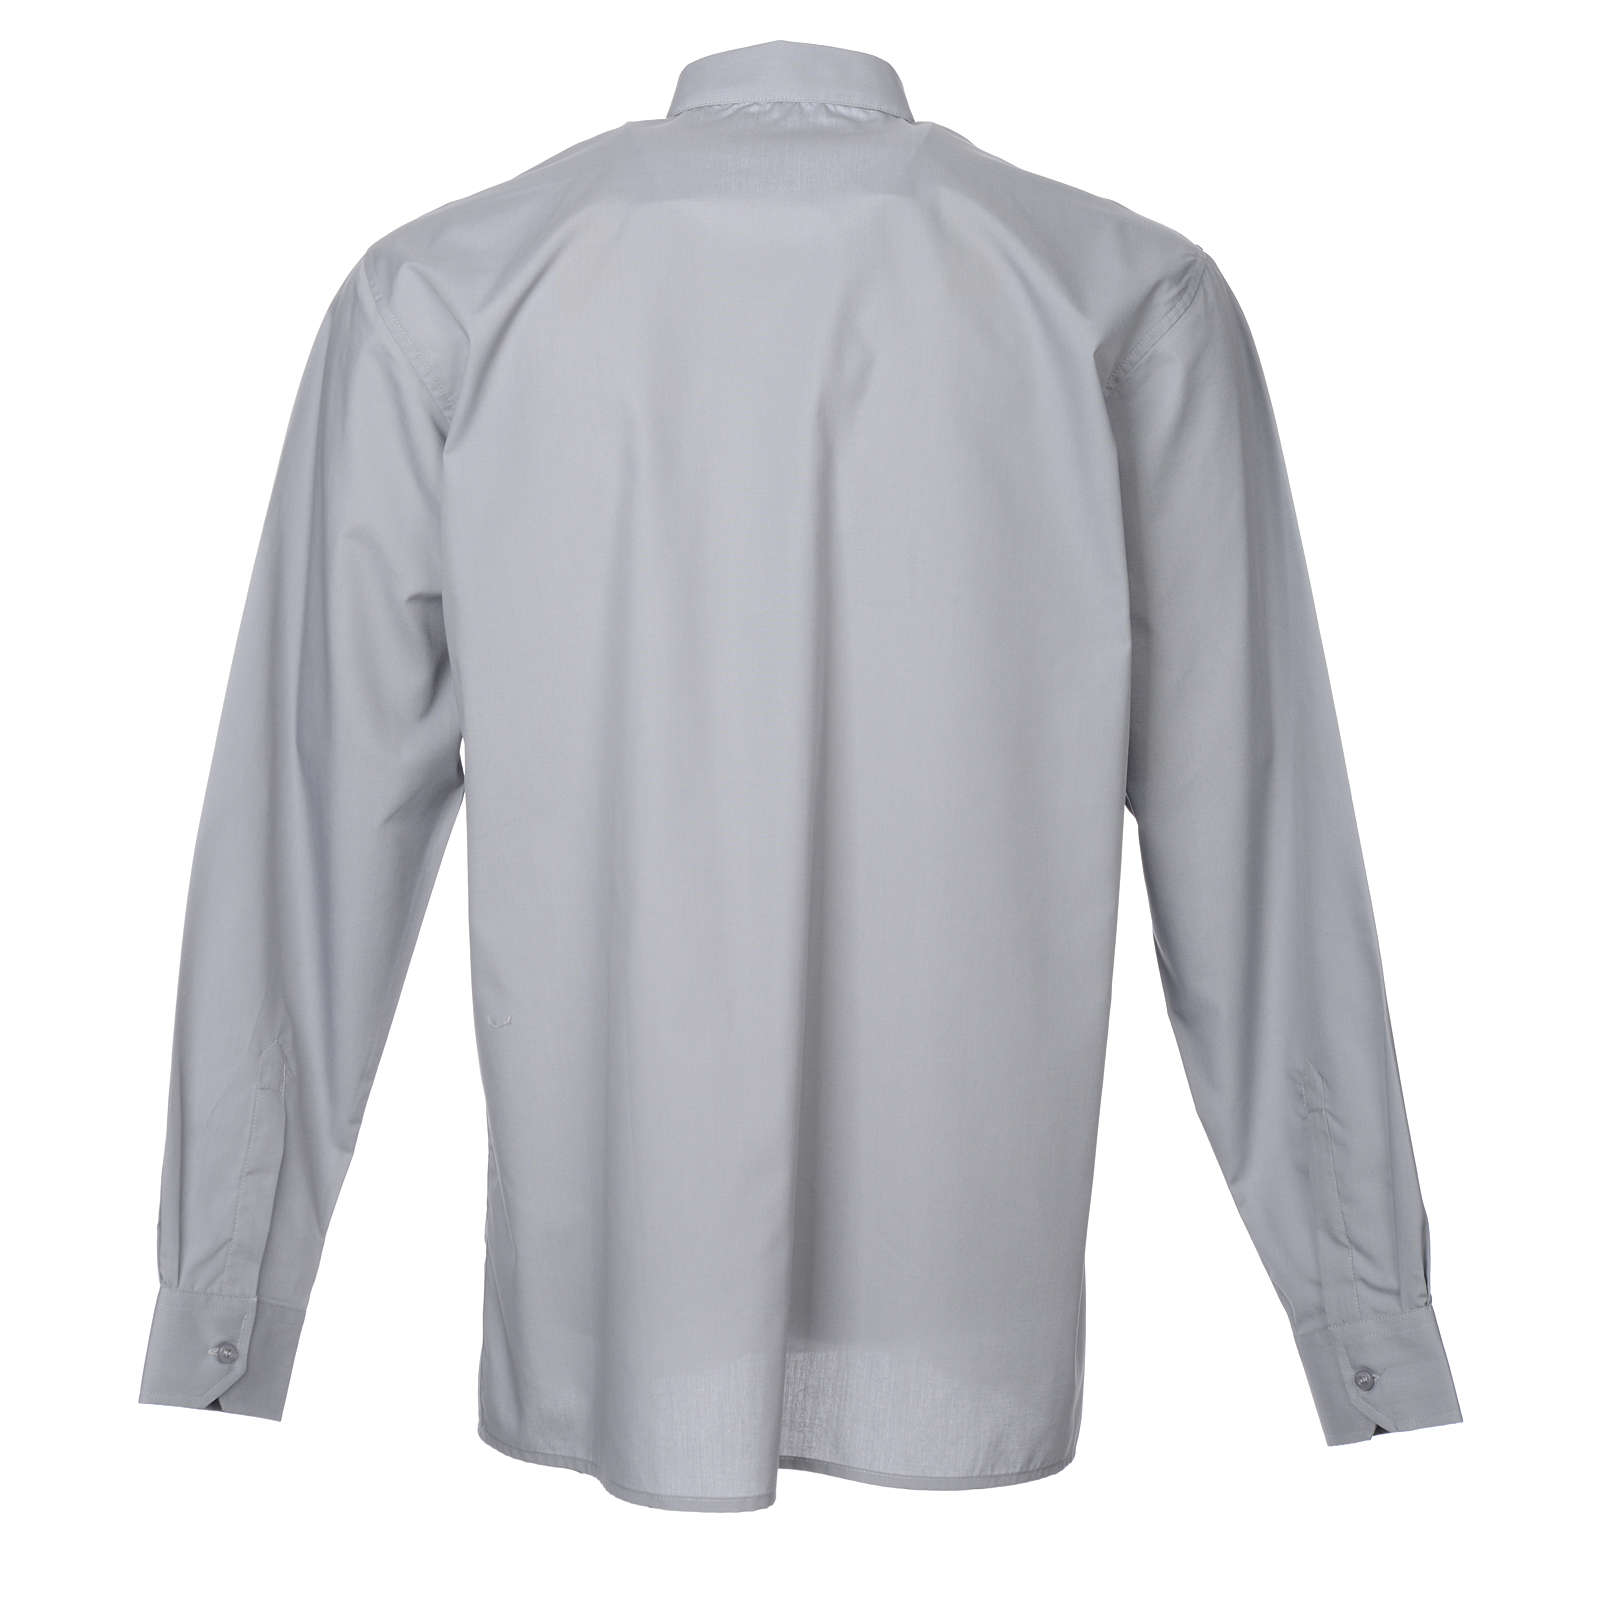 STOCK Clergy shirt in light grey mixed cotton, long sleeves 4